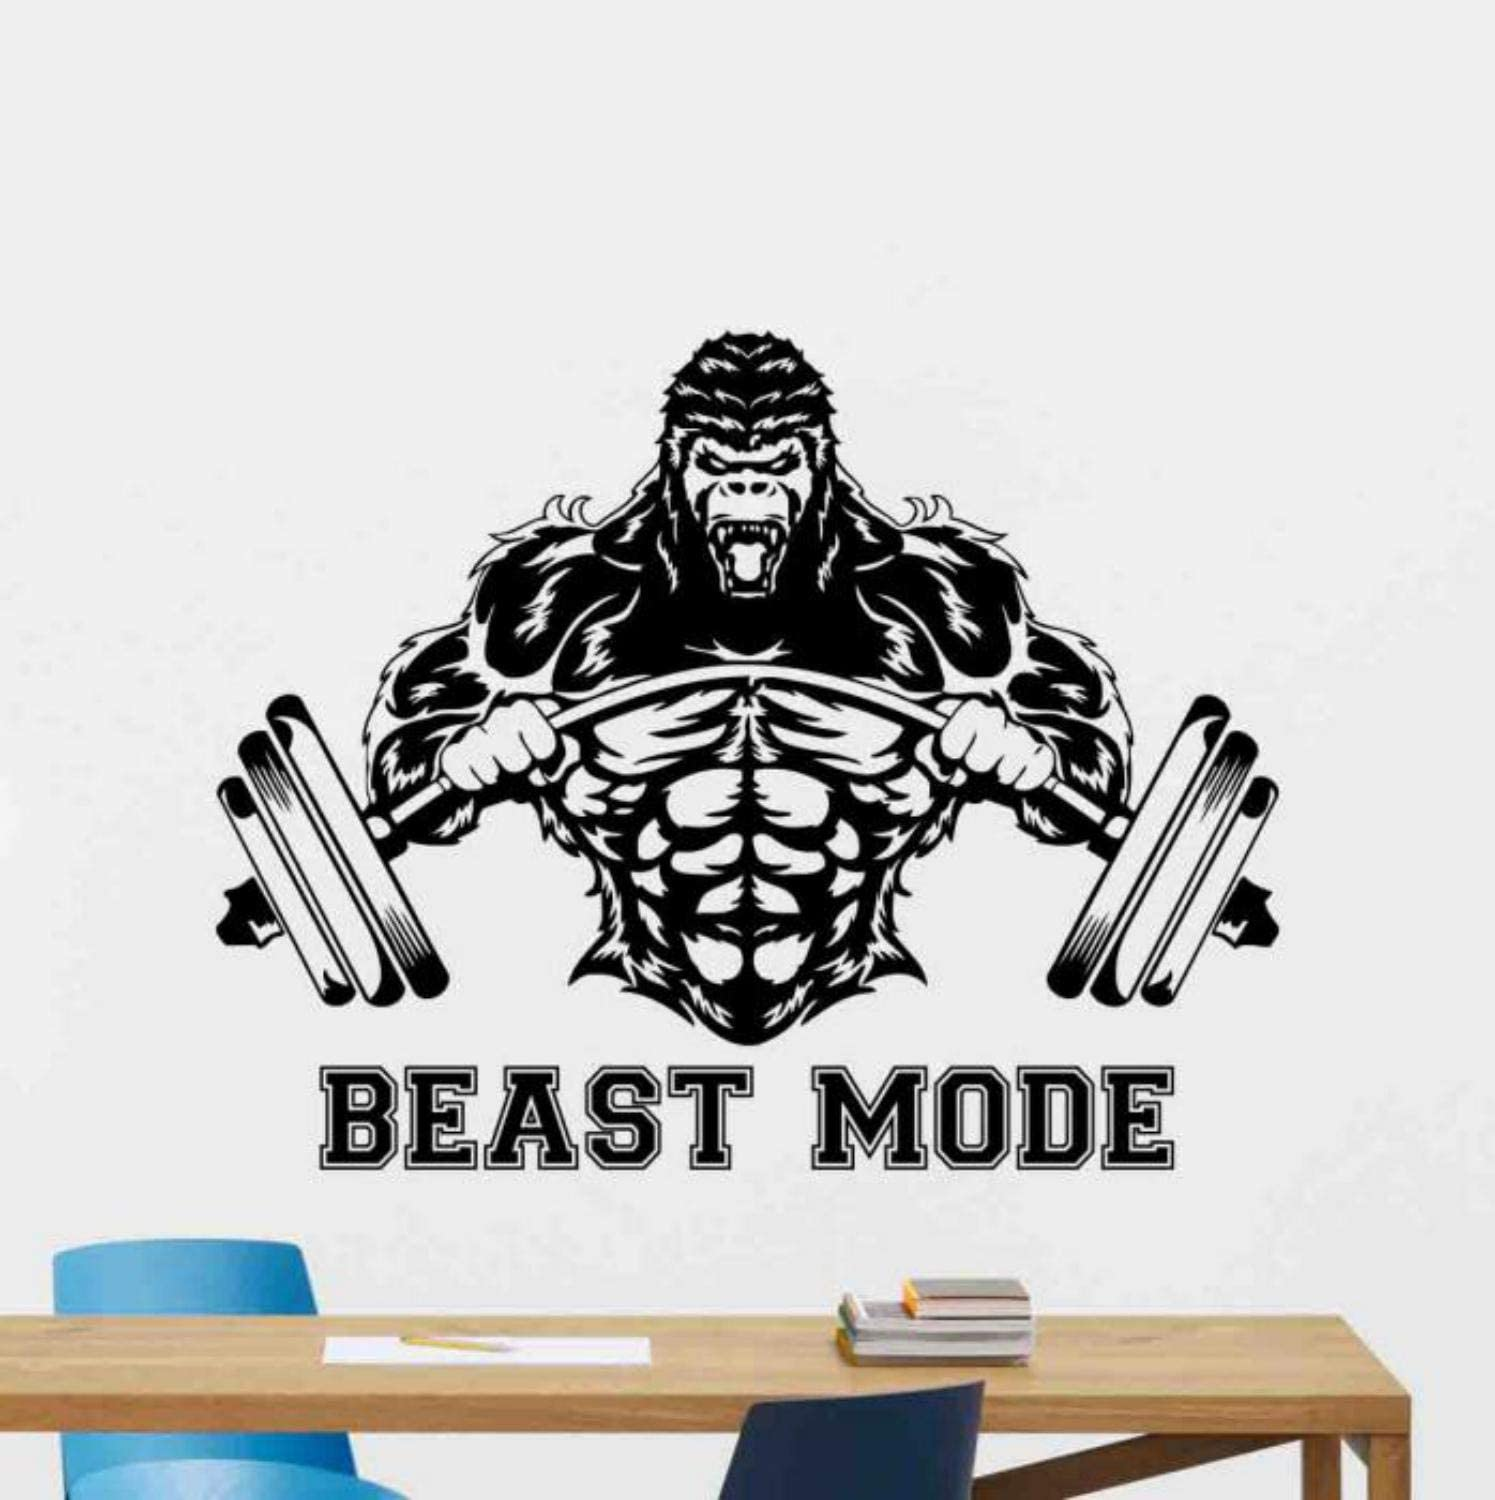 Amazon Com Kellysdesigns Beast Mode Wall Decal Sign Gorilla Barbell Vinyl Sticker Gym Quote Fitness Poster Motivational Decor Gifts Workout Wall Decor Crossfit Wall Art Fan Sport Bodybuilding Gym Mural 1084 Home